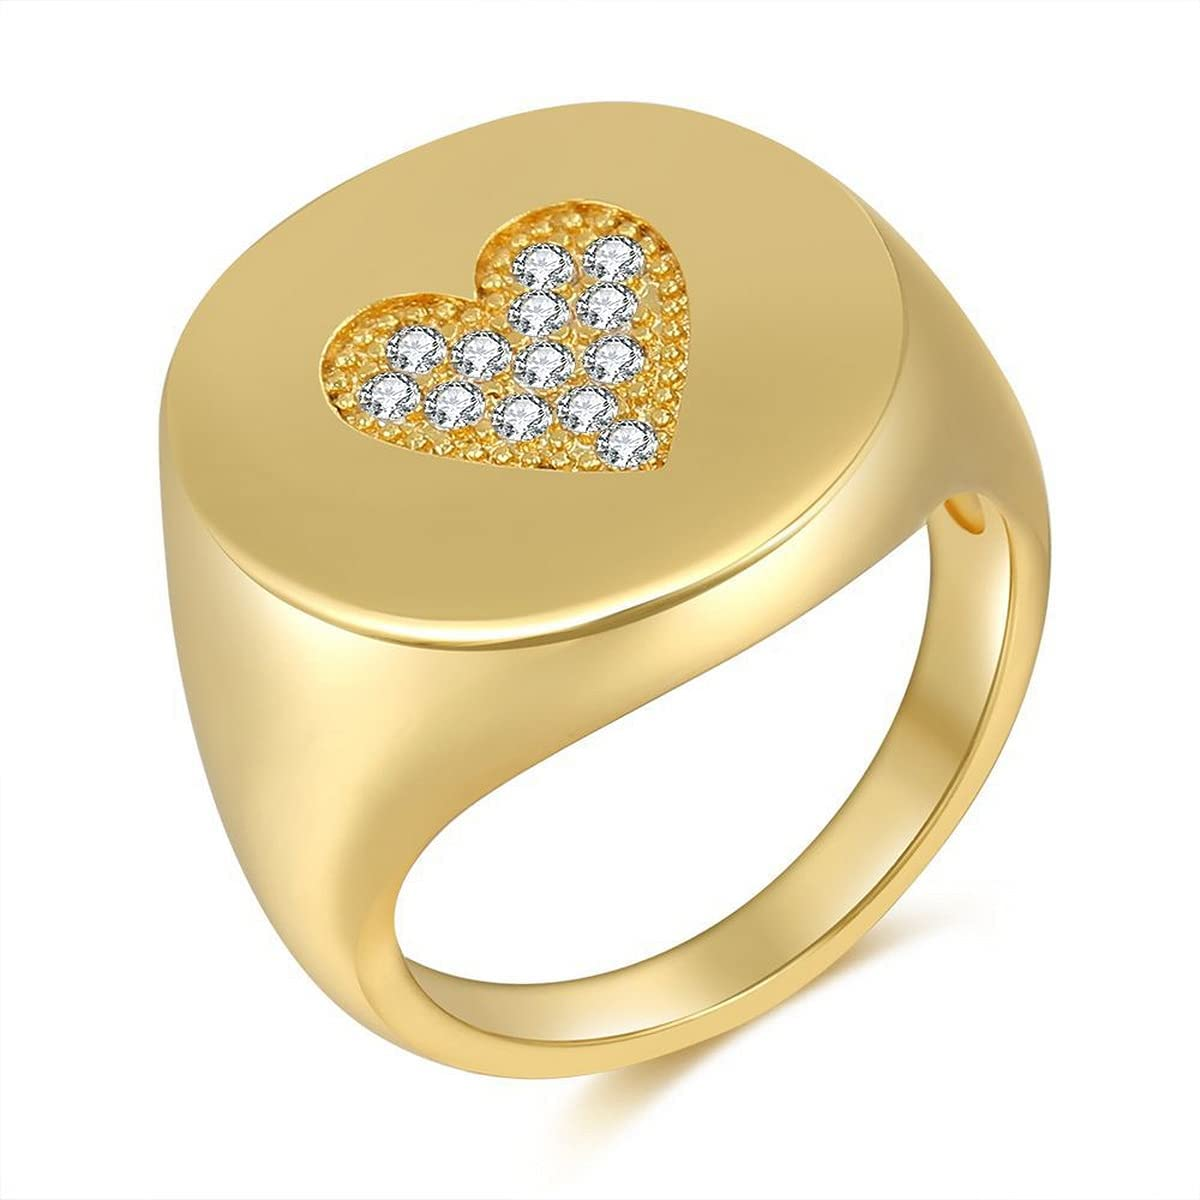 Gold Pink Heart Ring - Chunky Signet Thick Ring Studded Rhinestone,Y2K Statement Trendy Jewelry Gifts for Women Teen Girls Men